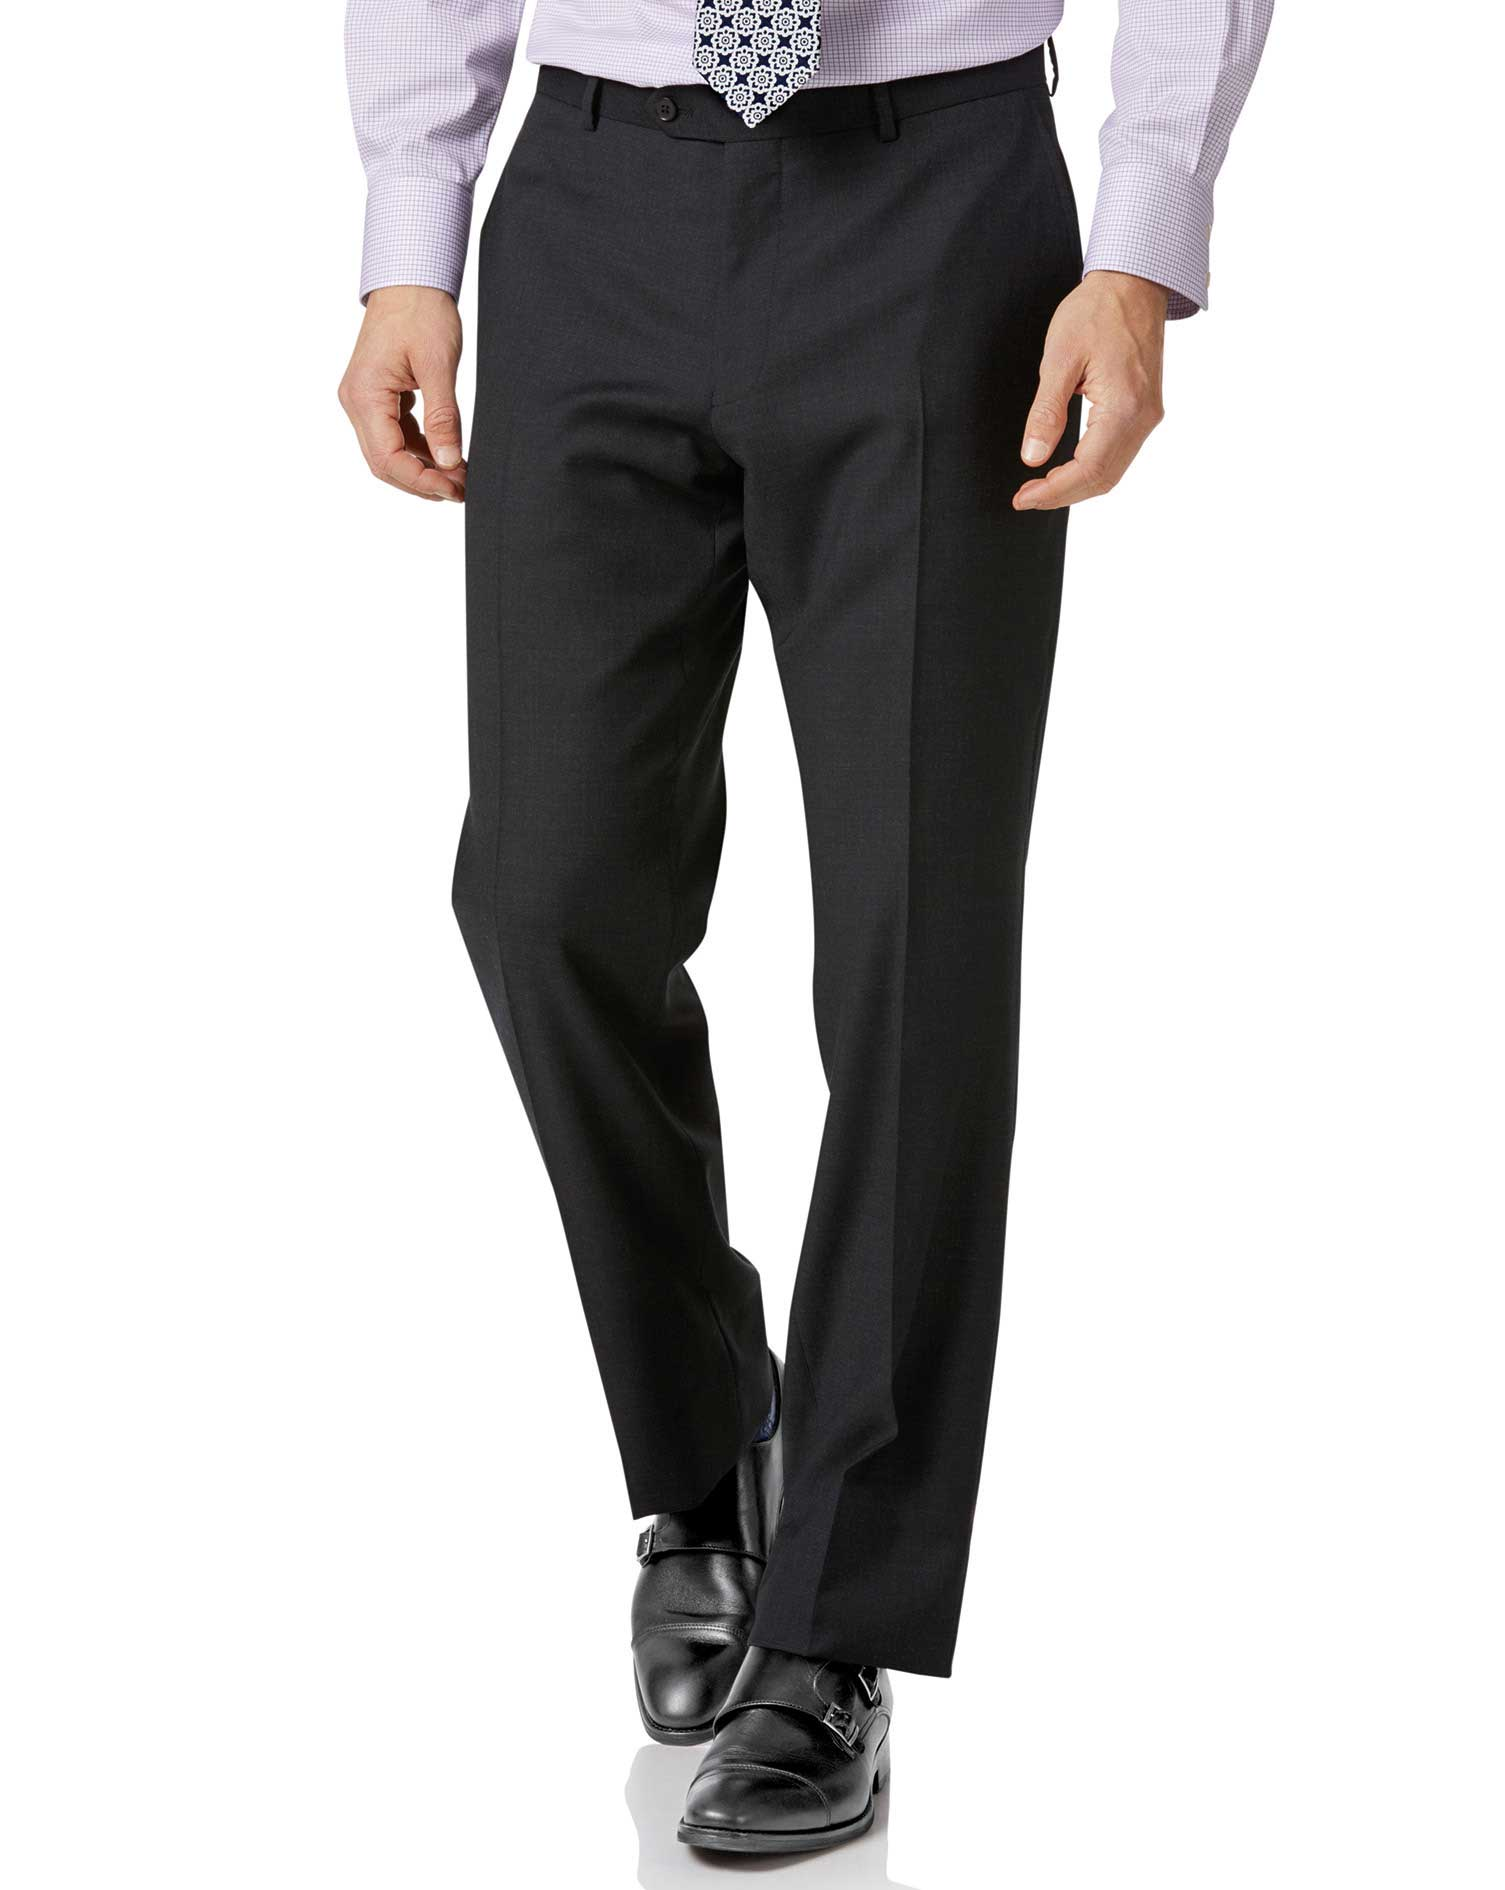 Charcoal Classic Fit Twill Business Suit Trousers Size W46 L38 by Charles Tyrwhitt